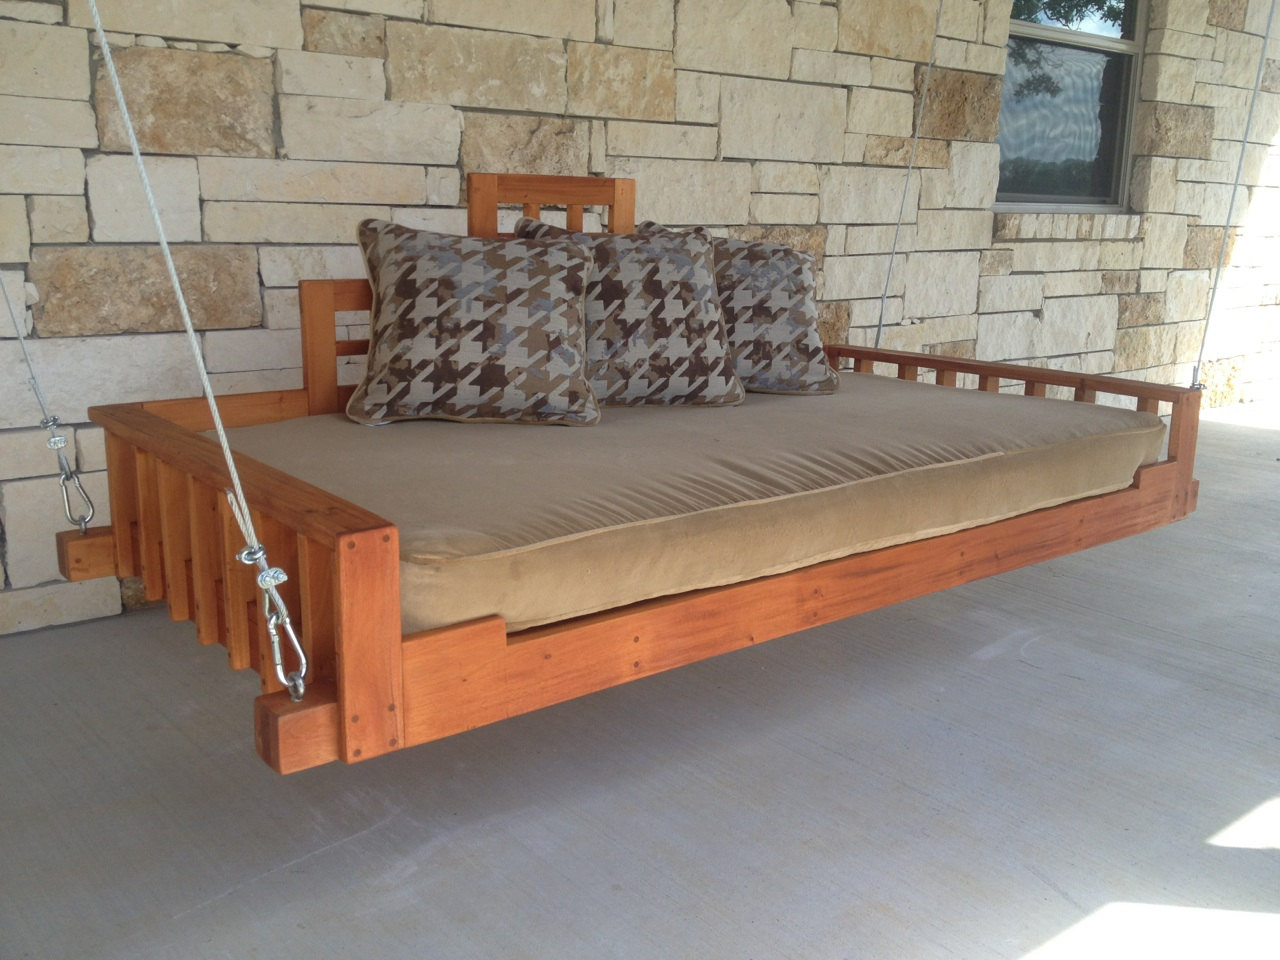 Swing Bed Porch Swing Outdoor Bed Hanging Bed Swing Handmade With Mahogany Wood Sold By Industrial Envy On Storenvy